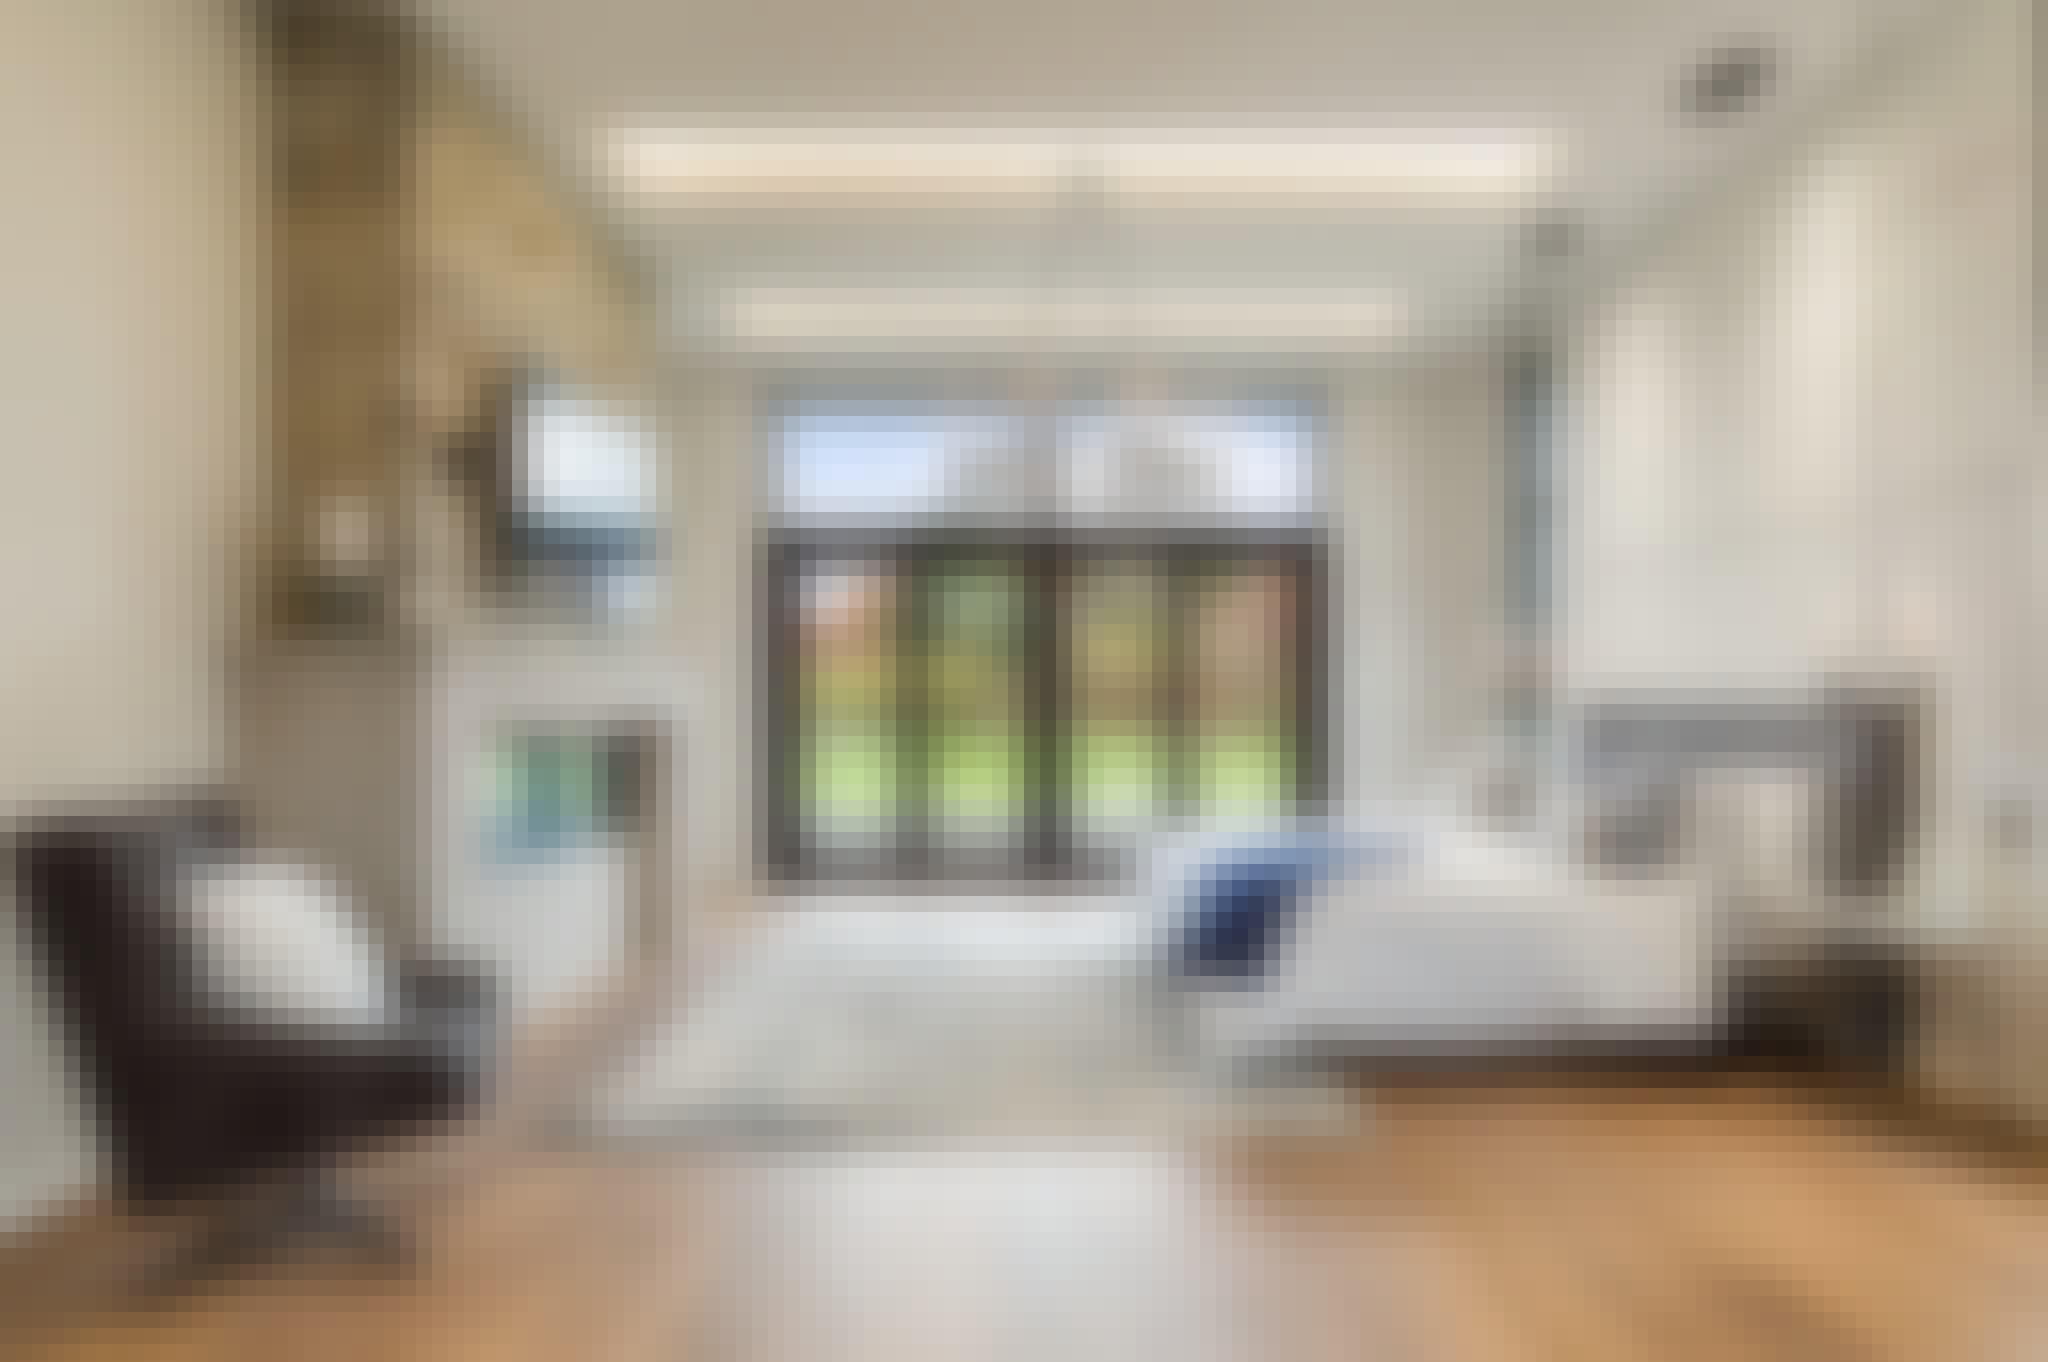 exterior glass wall systems in a bedroom